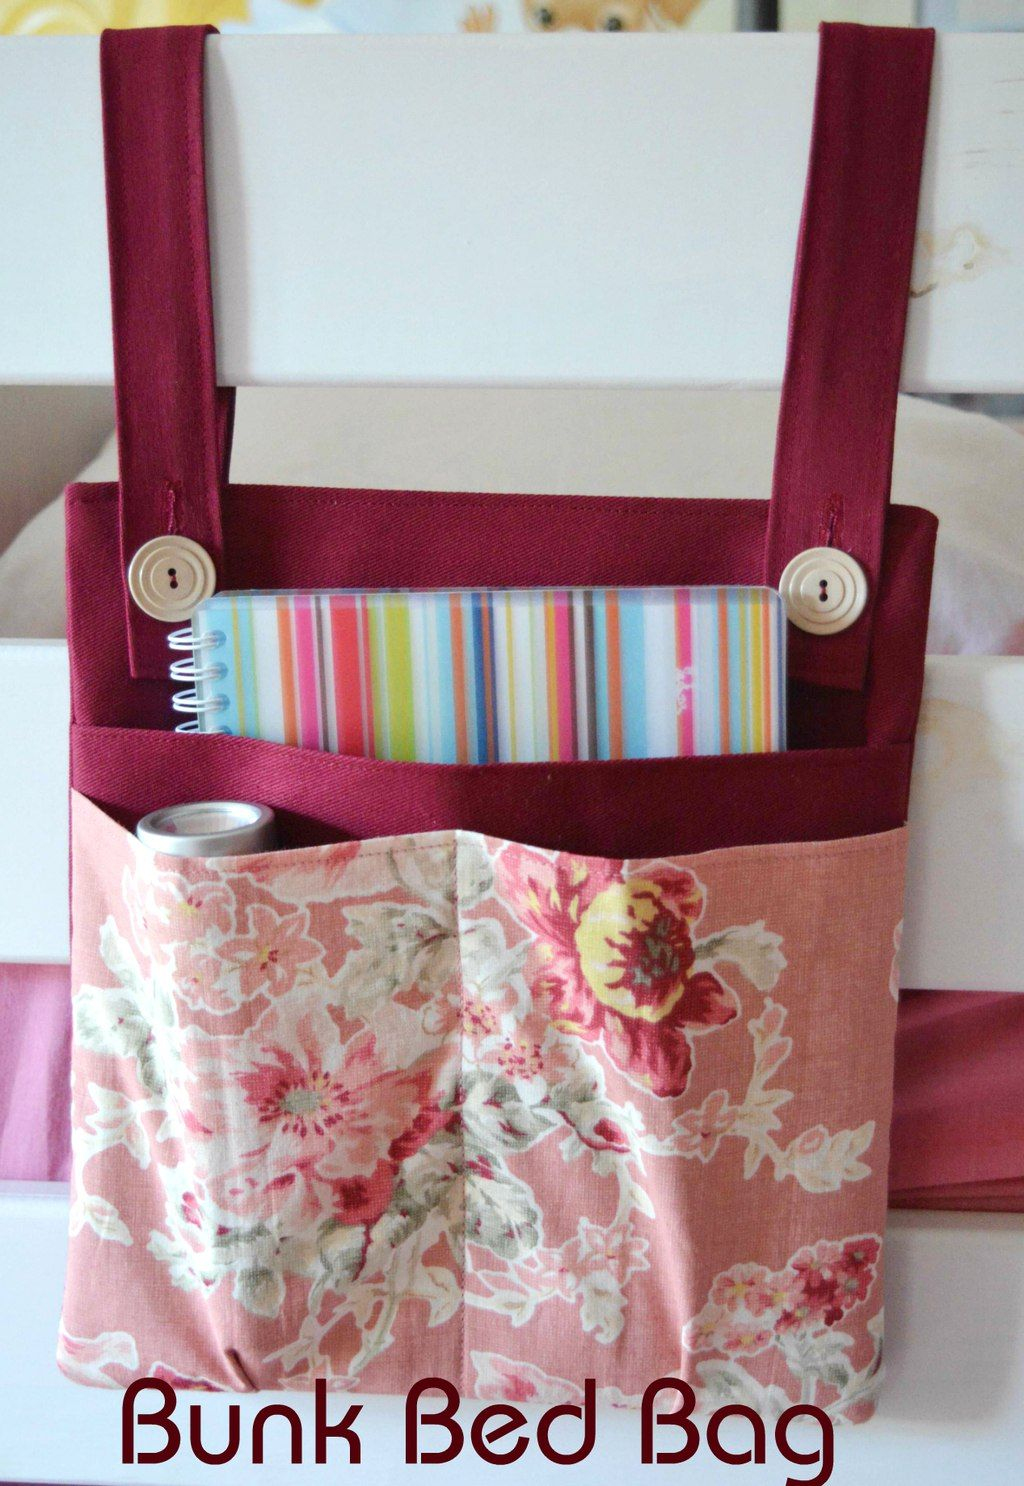 Diy Bunk Bed Storage Bag Organizer Bags Baskets Pouches